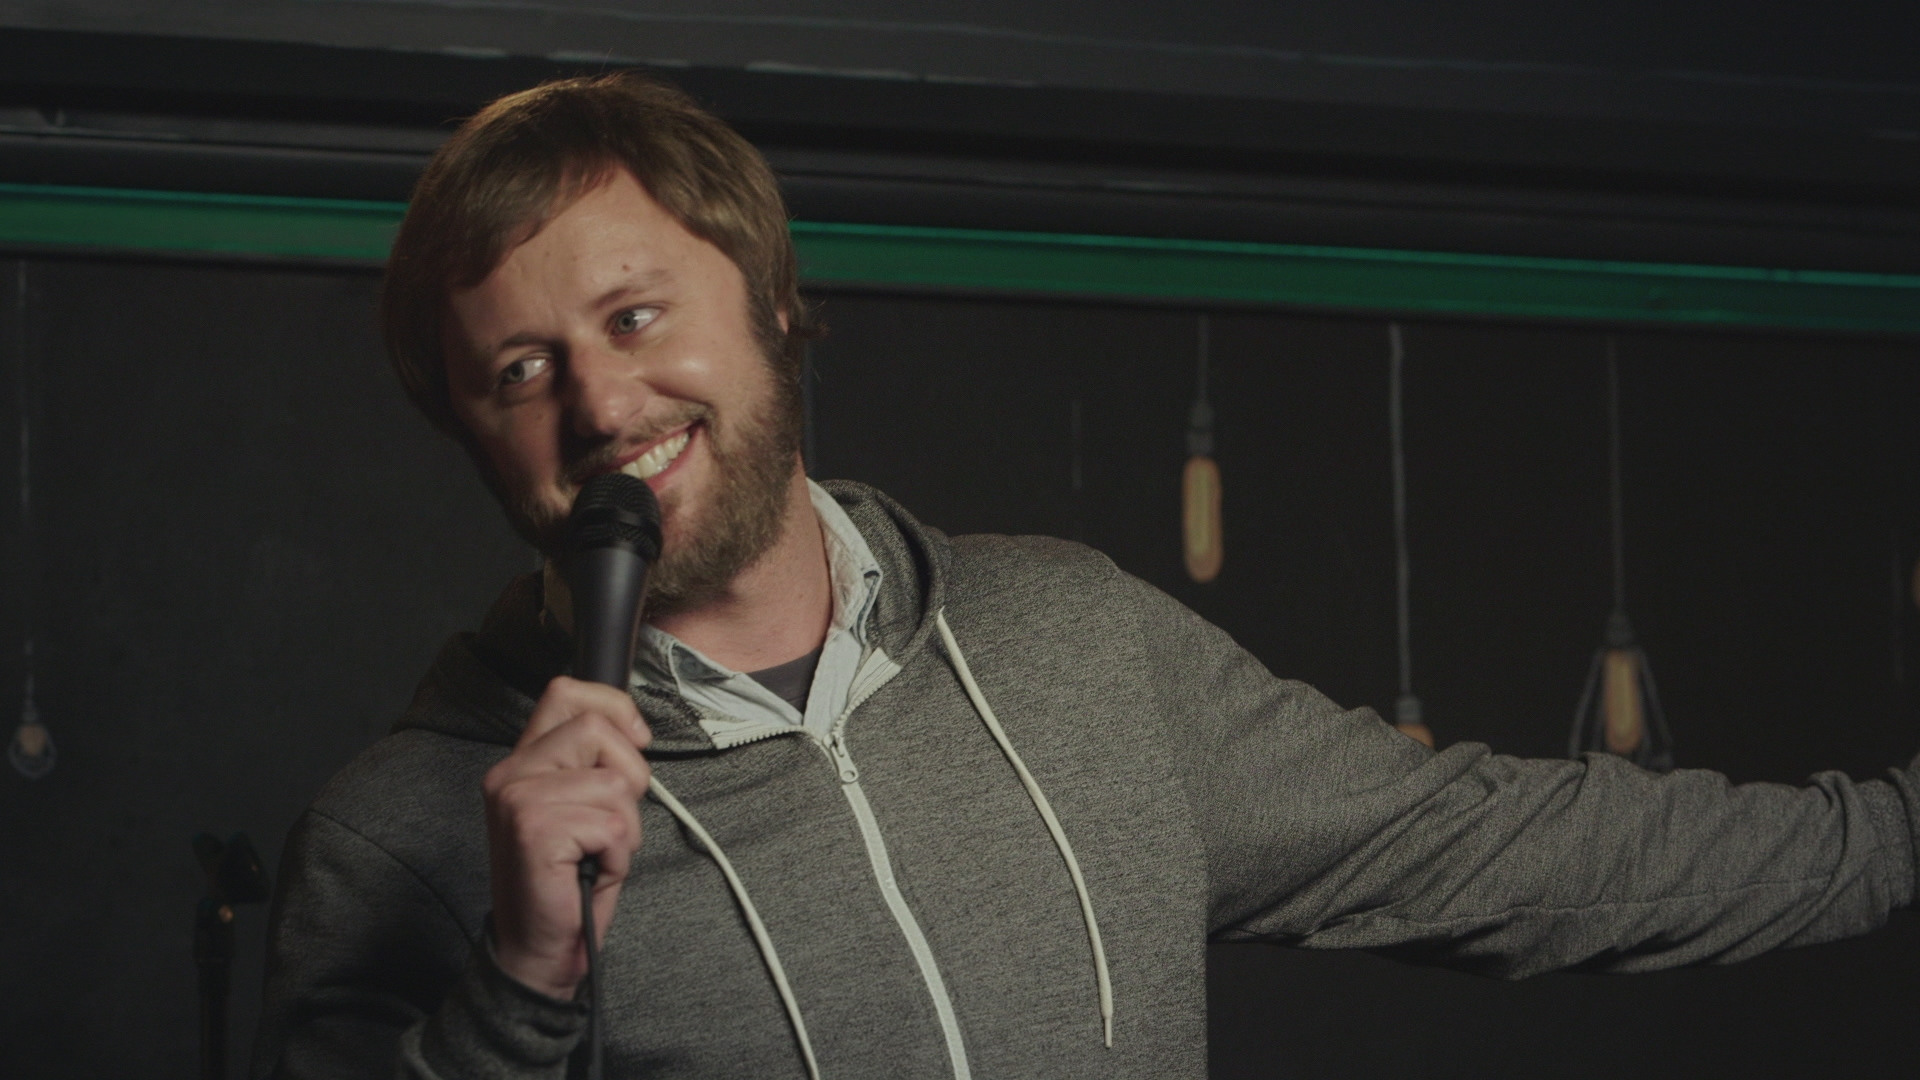 Uncensored - Rory Scovel - Longest Applause Ever